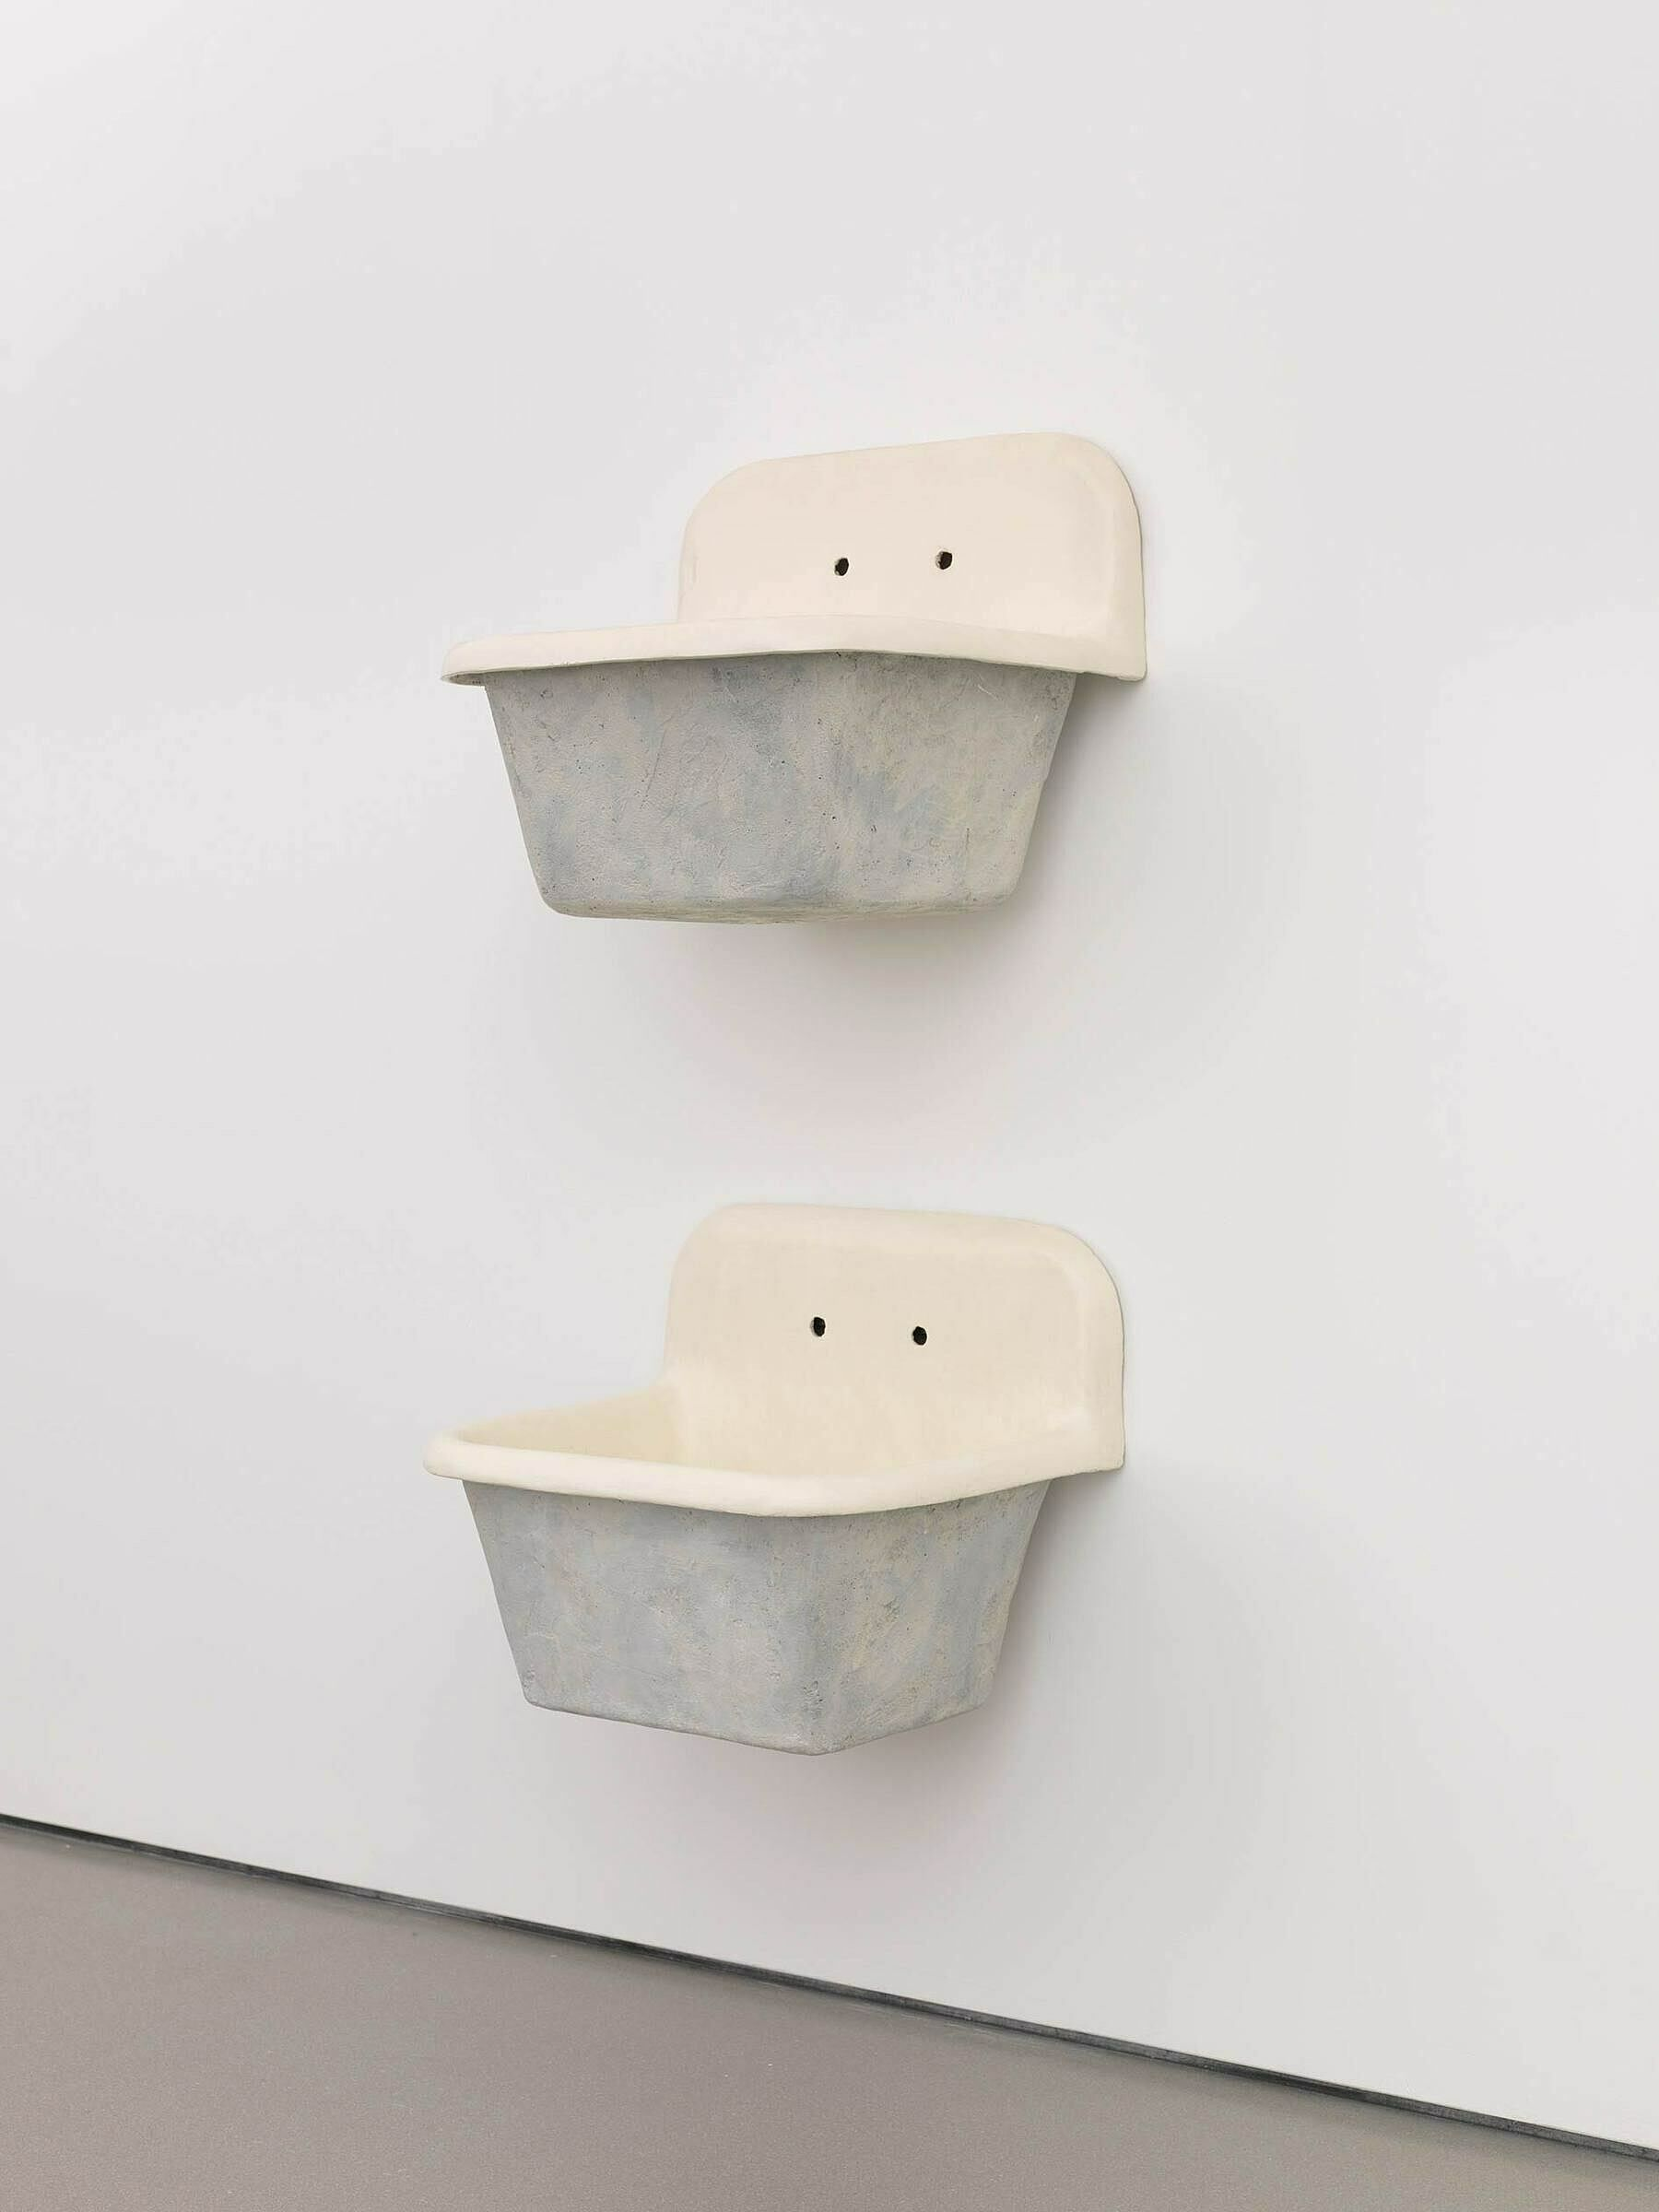 Two sculptures of sink basins attached to a wall.